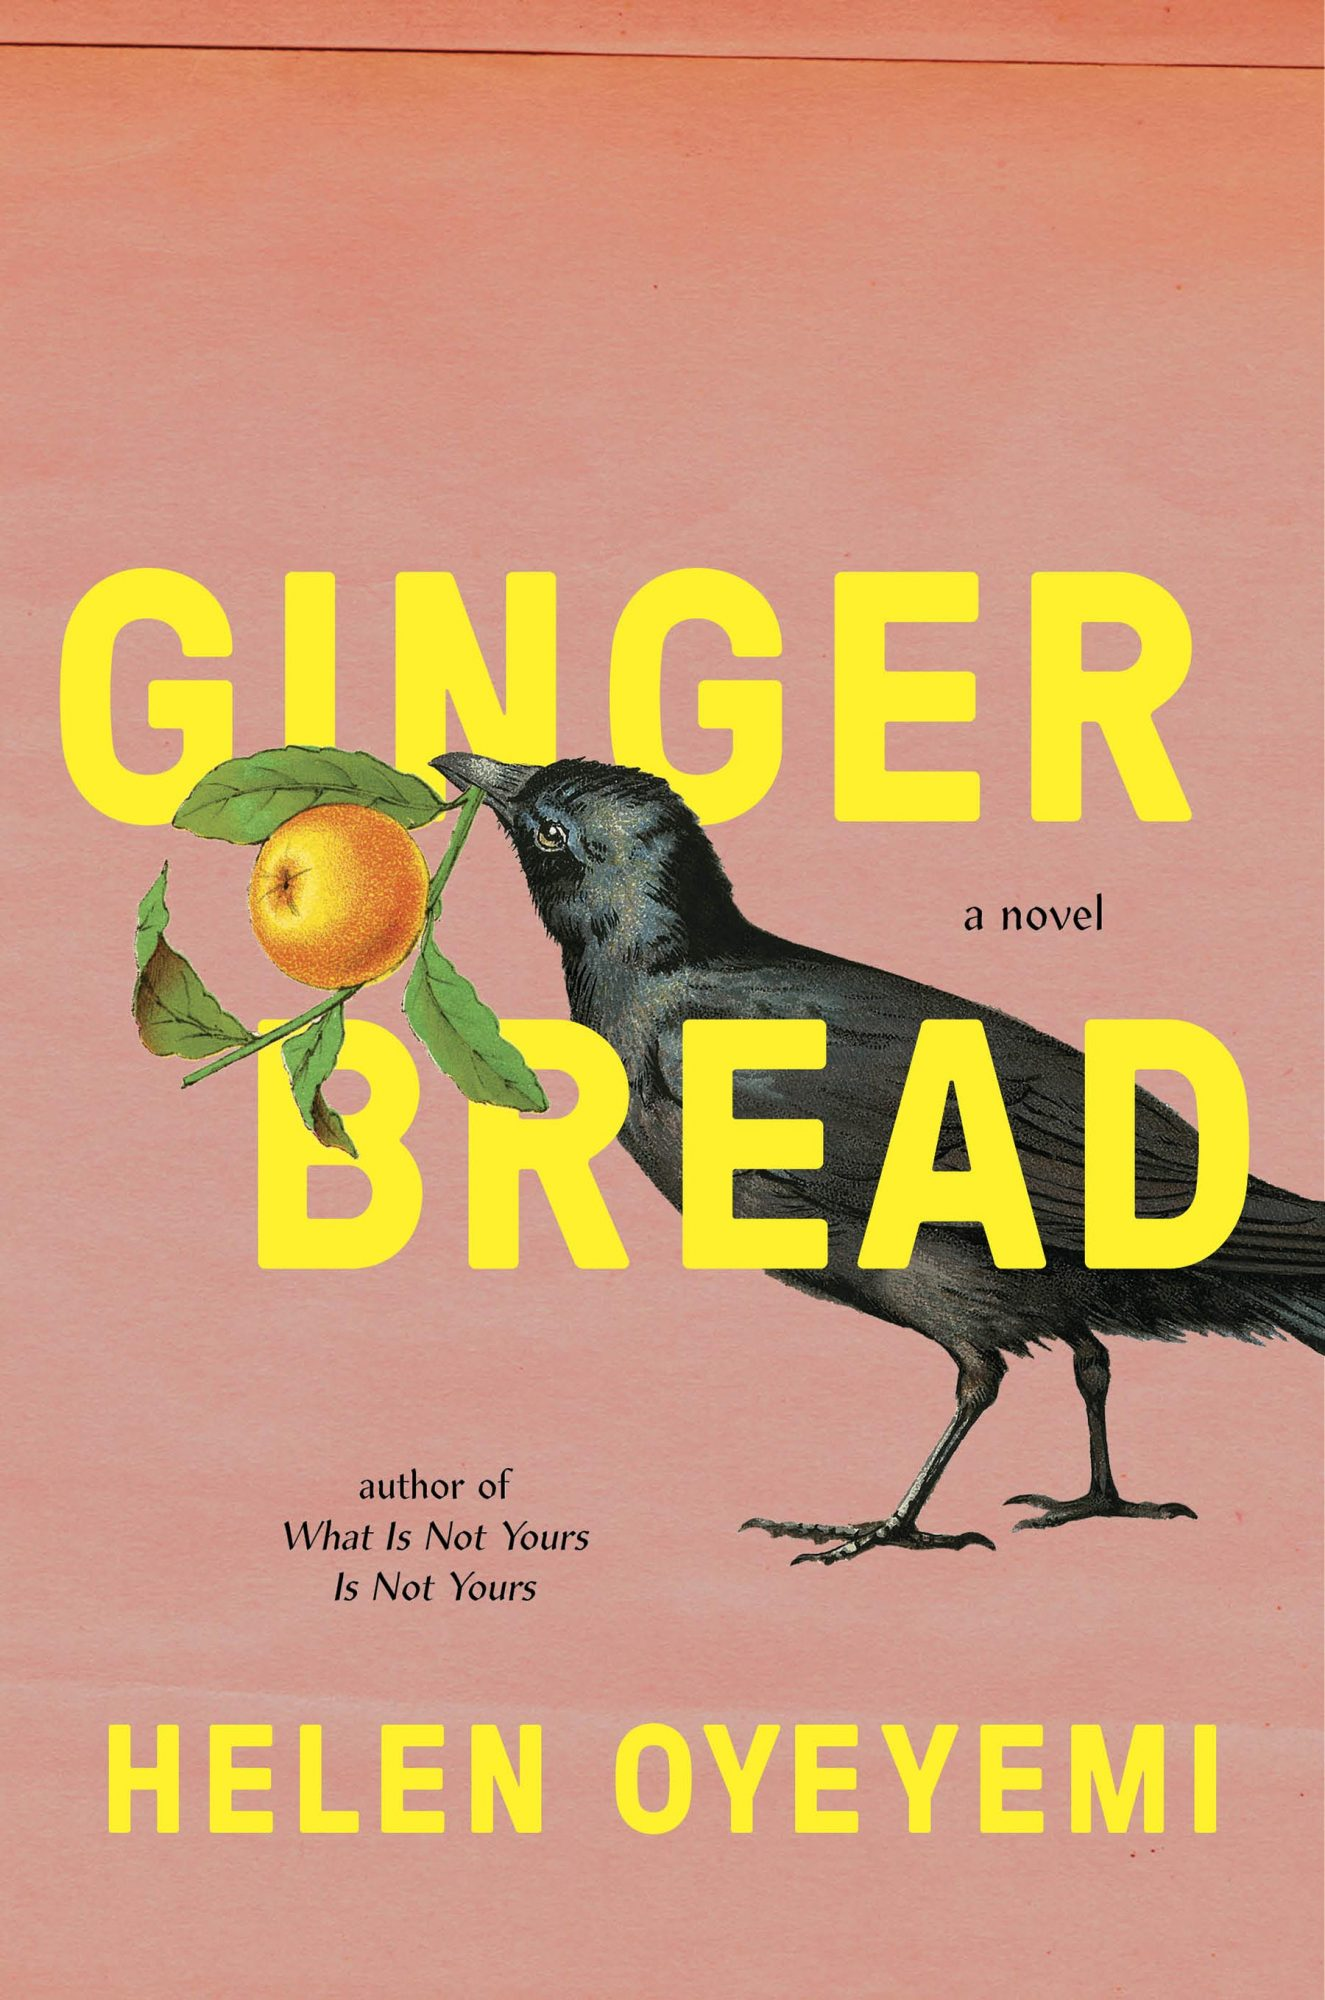 Helen Oyeyemi, GingerbreadCredit: Riverhead Books